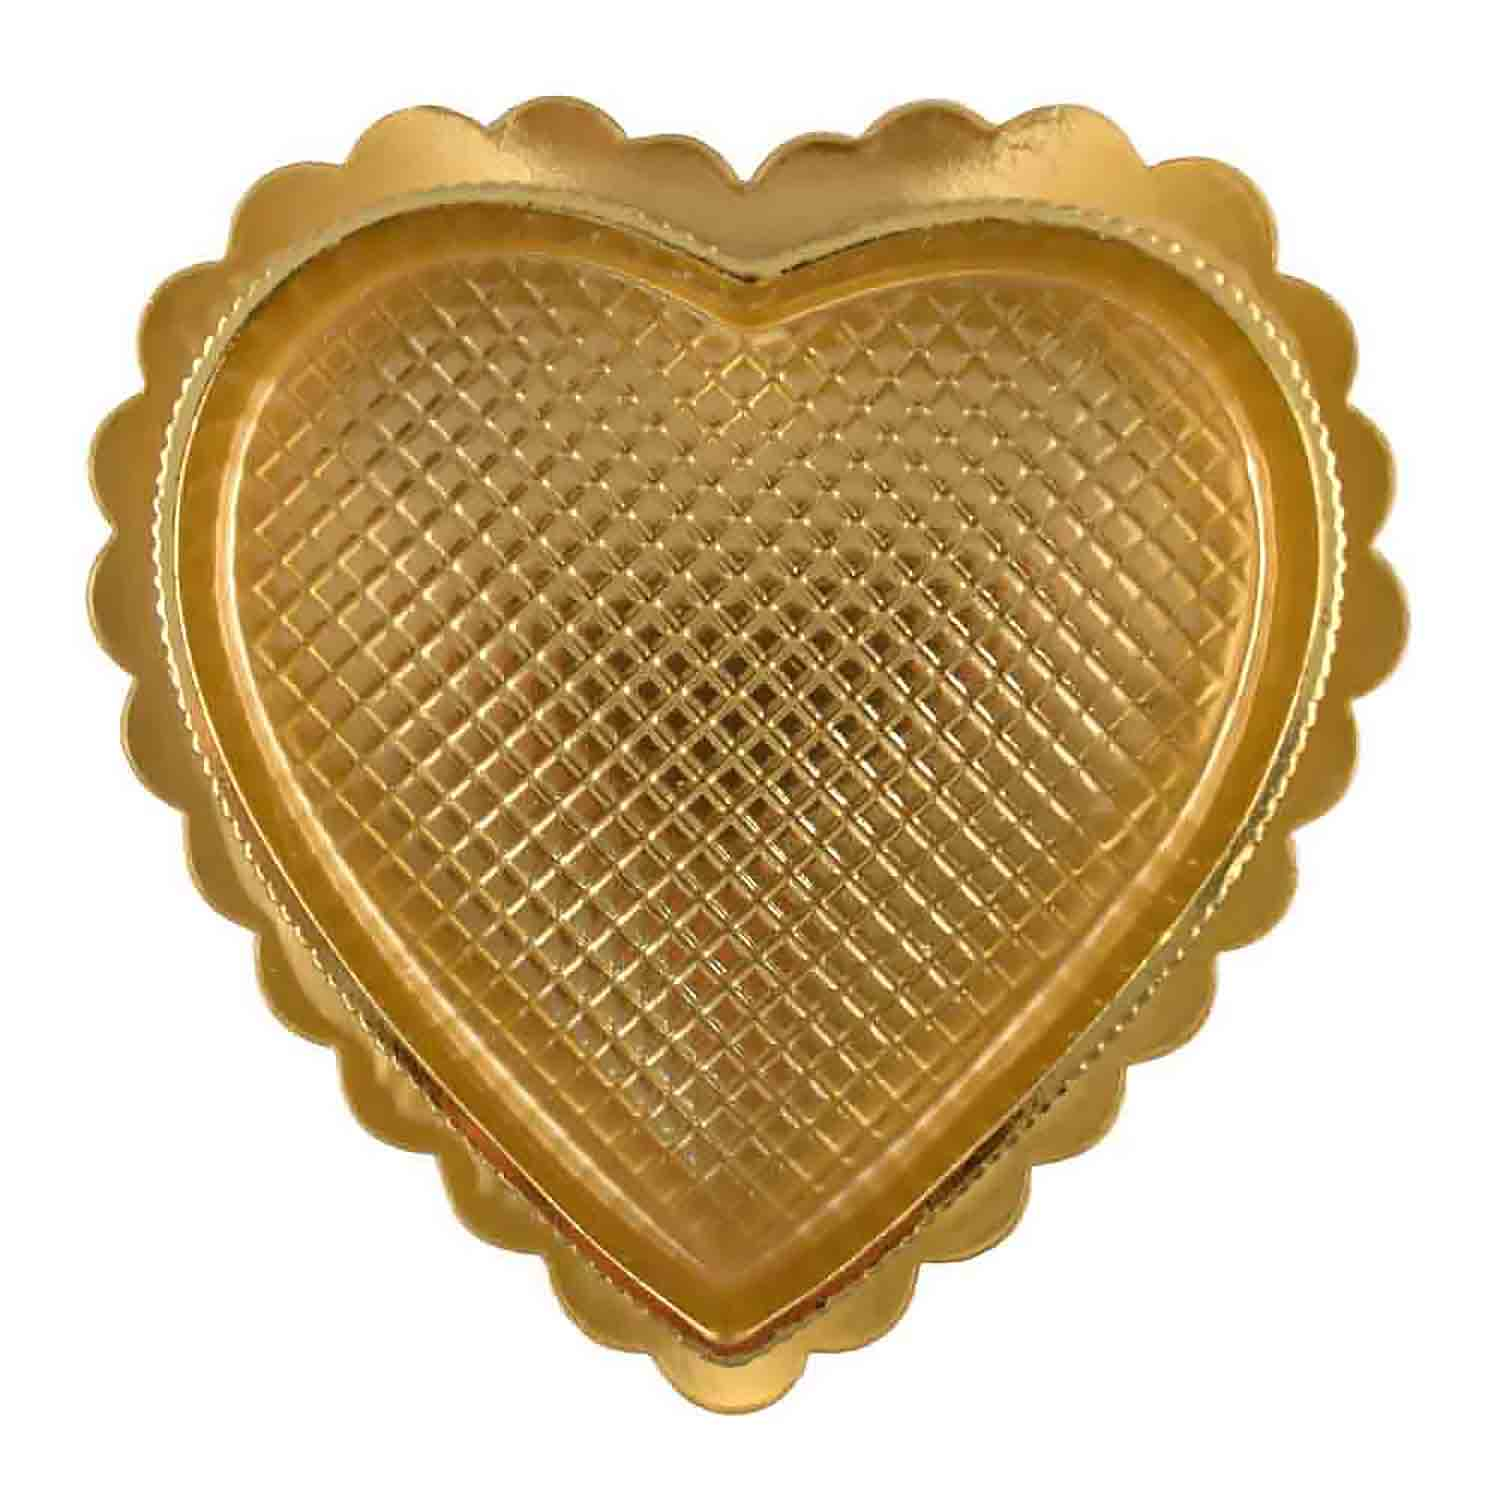 1/4 lb. Gold Heart Candy Box with Clear Lid